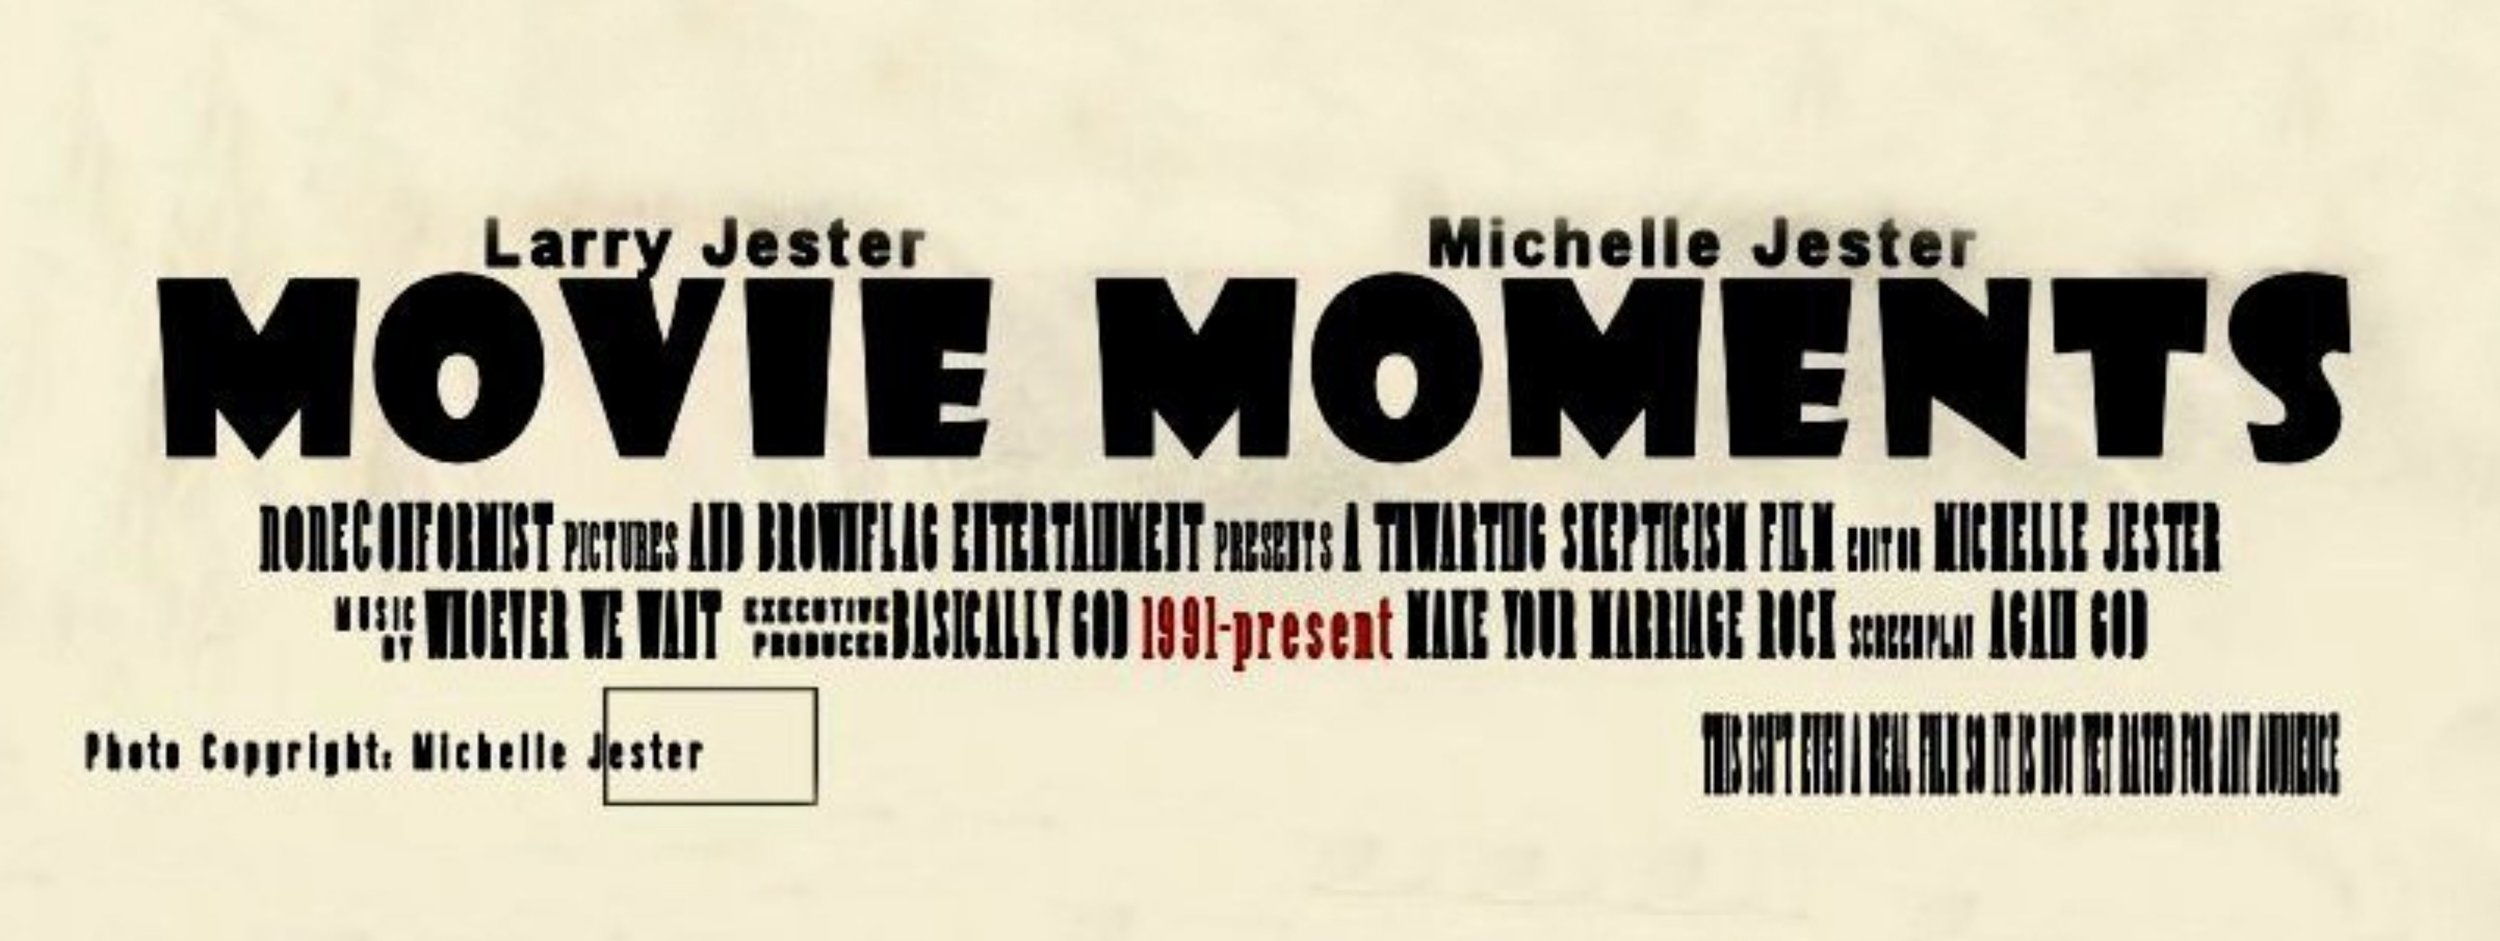 Michelle Jester PAGE Movie Poster main22 header.jpg